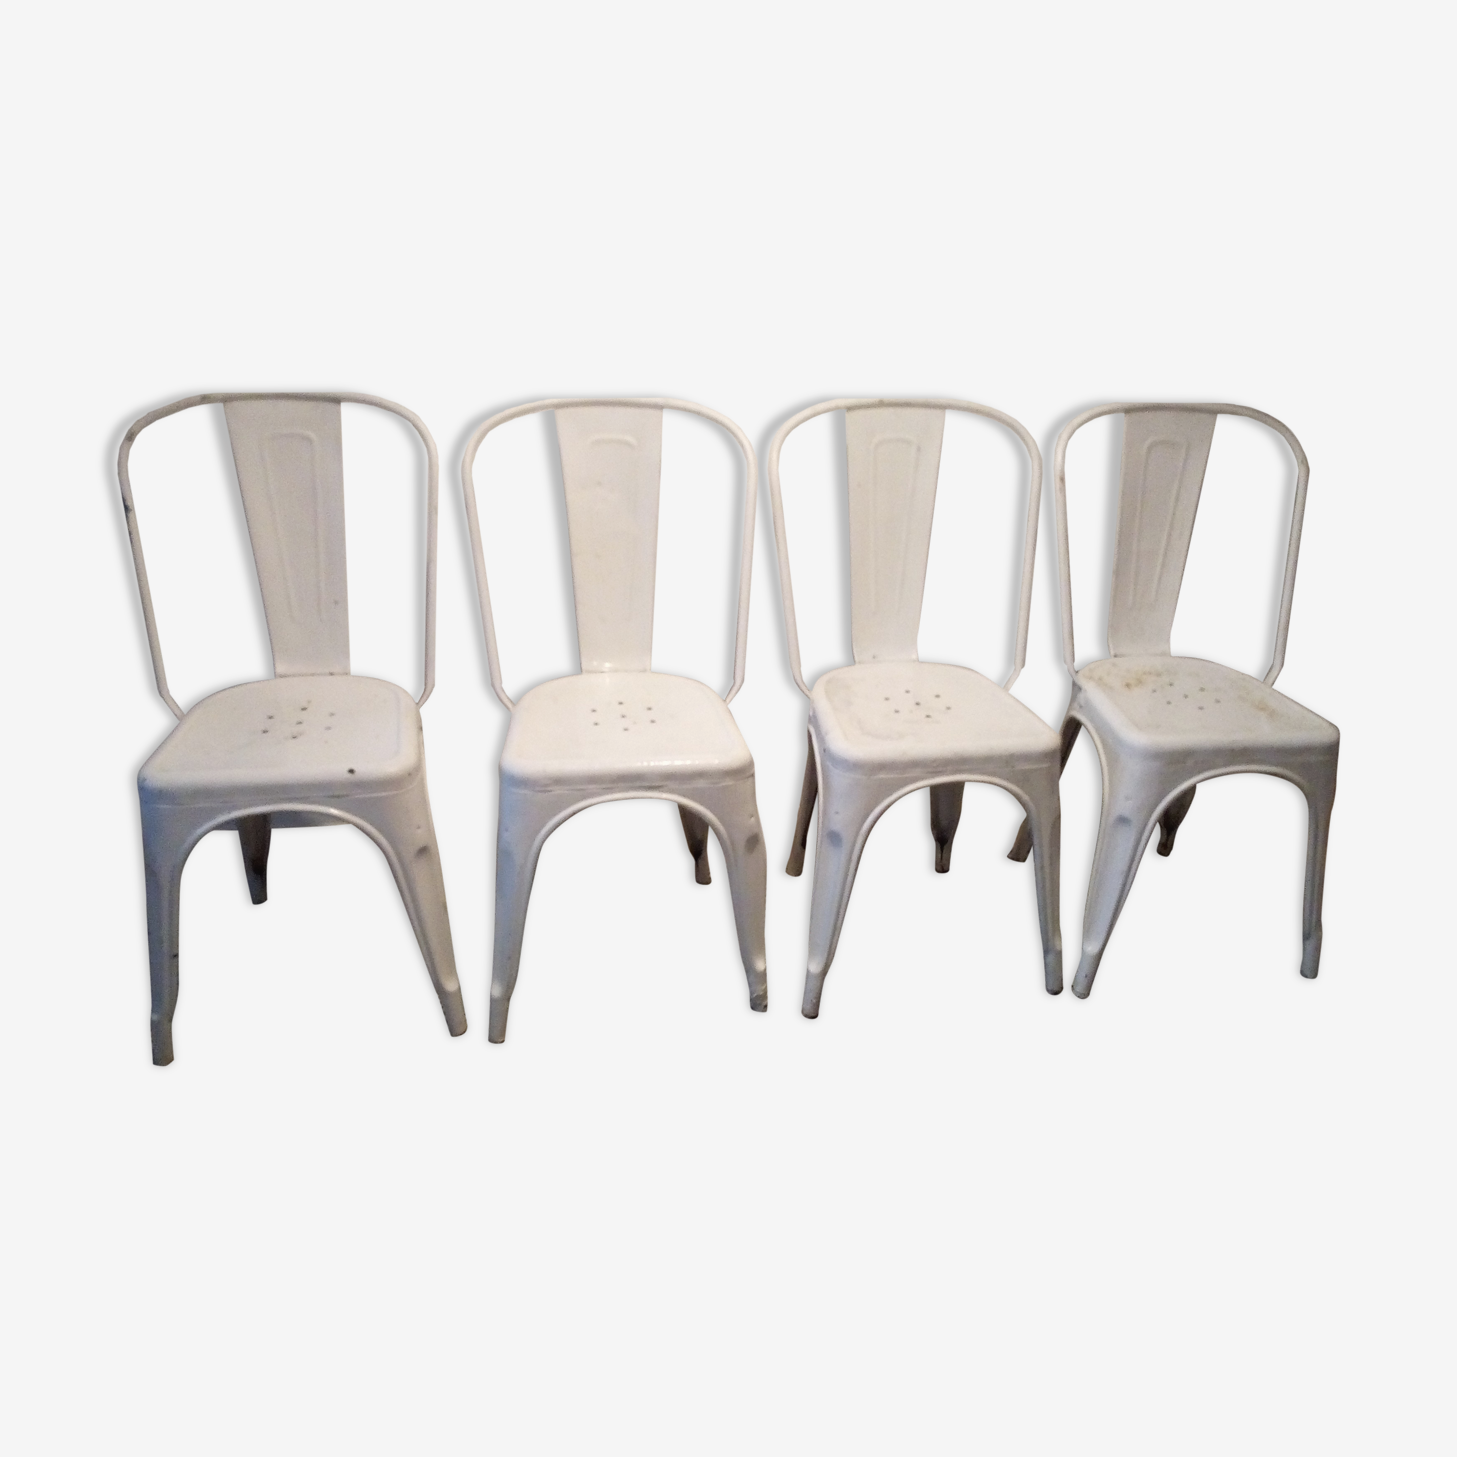 Set of old chairs TOLIX